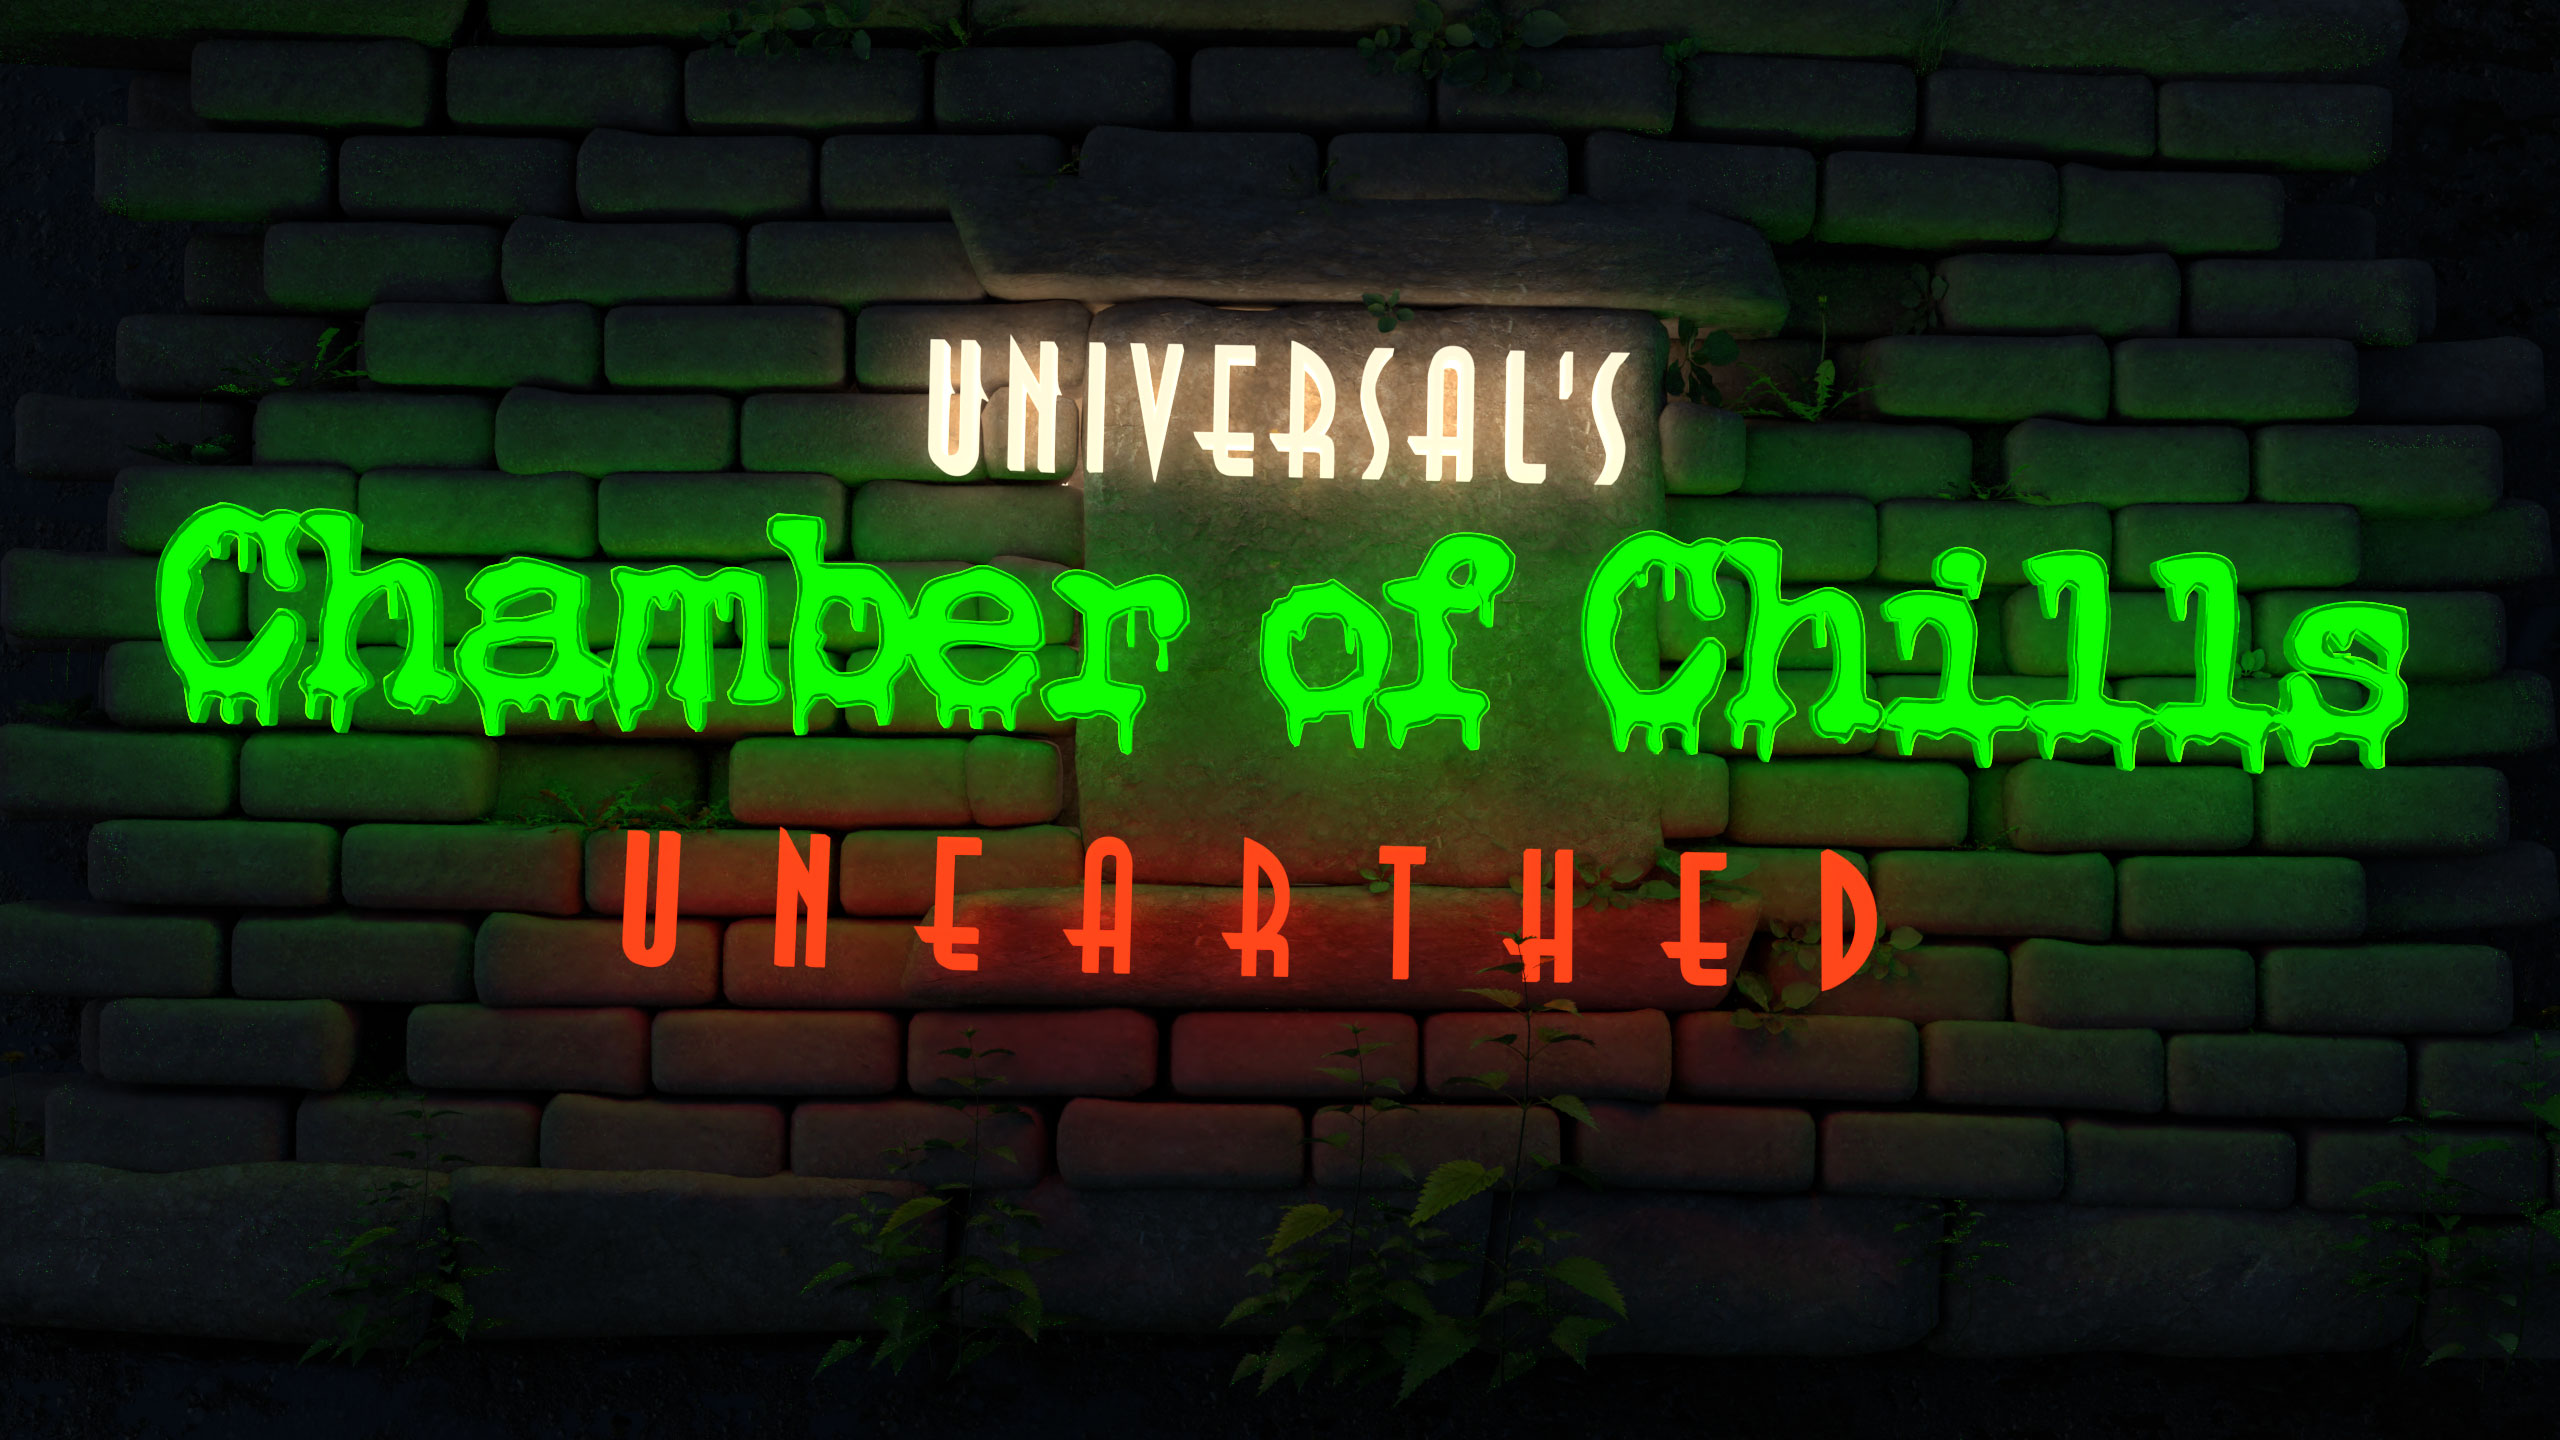 Universal's Chamber of Chills - Unearthed